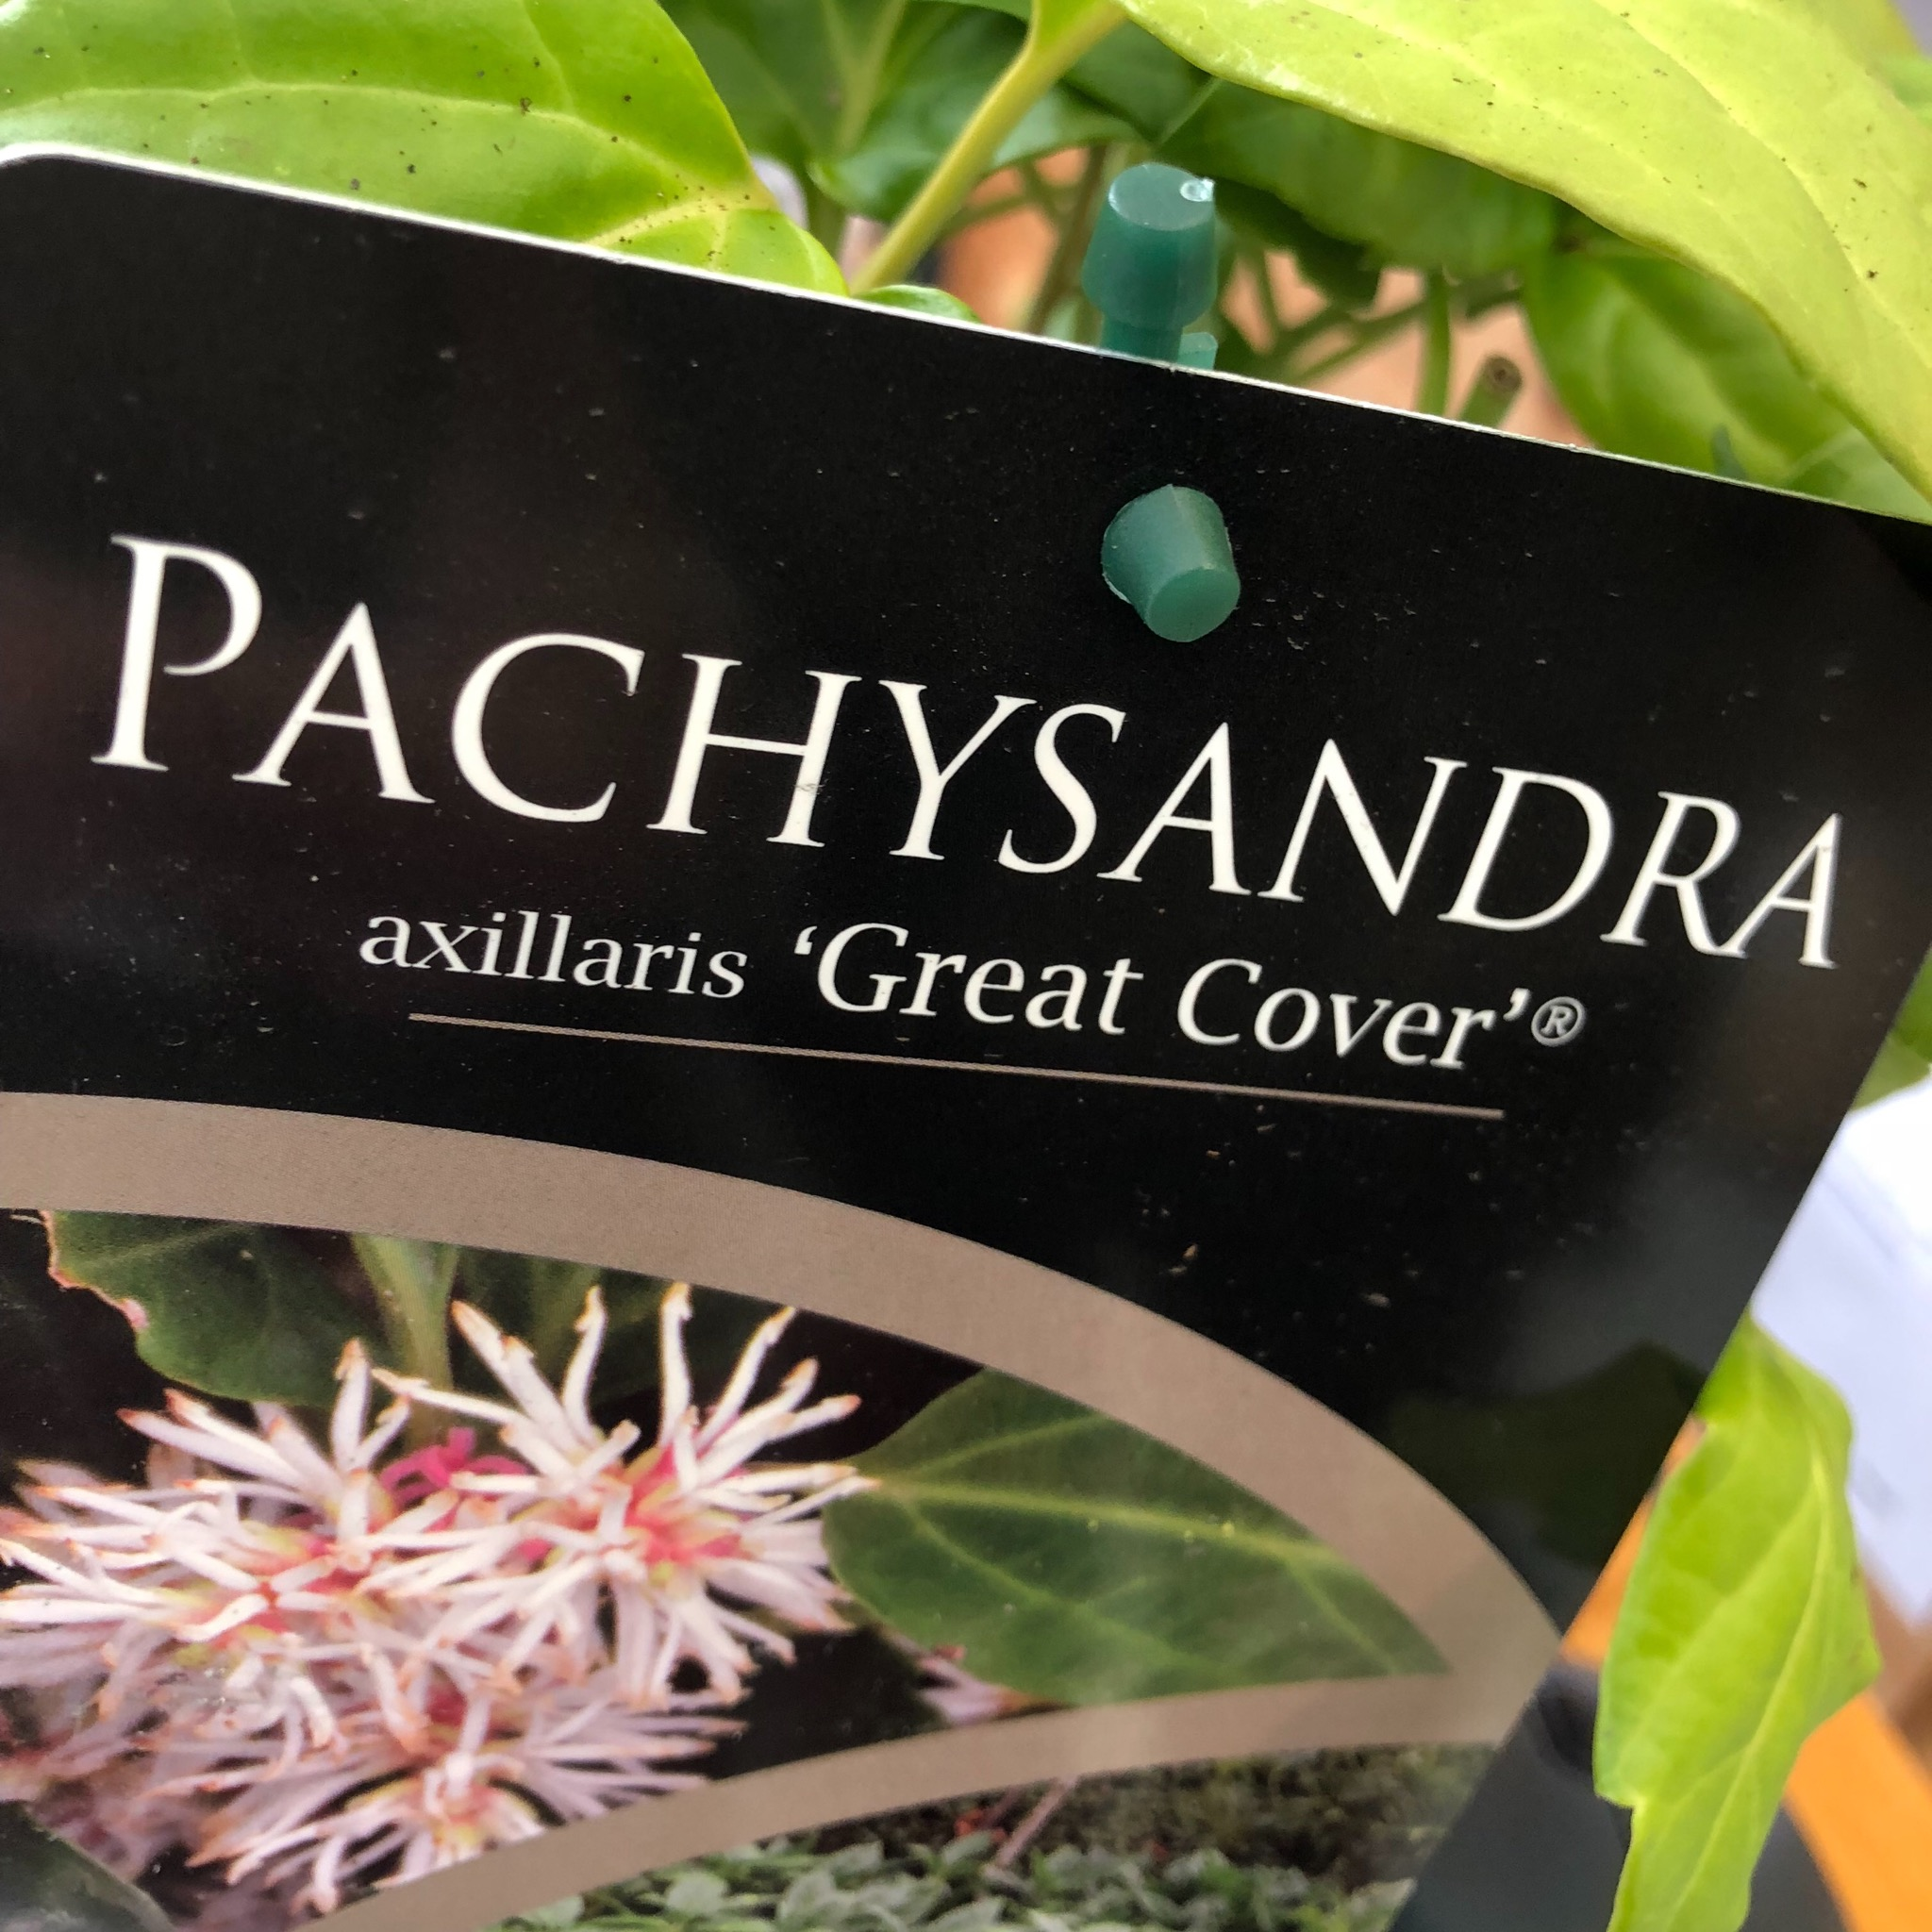 Picture of Pachysandra axillaris 'Great Cover'